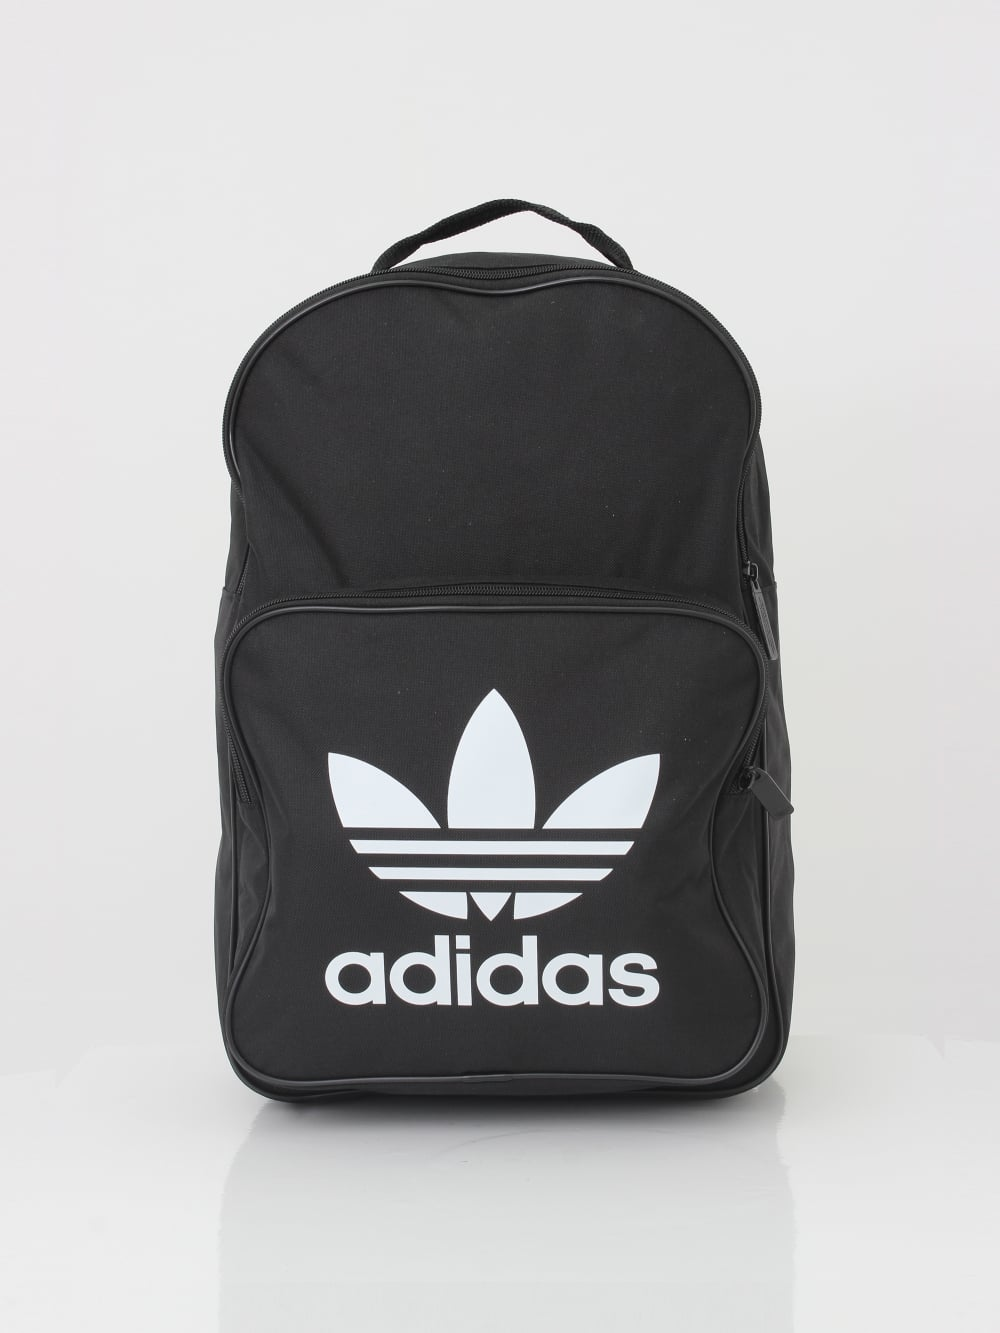 586e82573d adidas Classic Trefoil Backpack in Black - Northern Threads